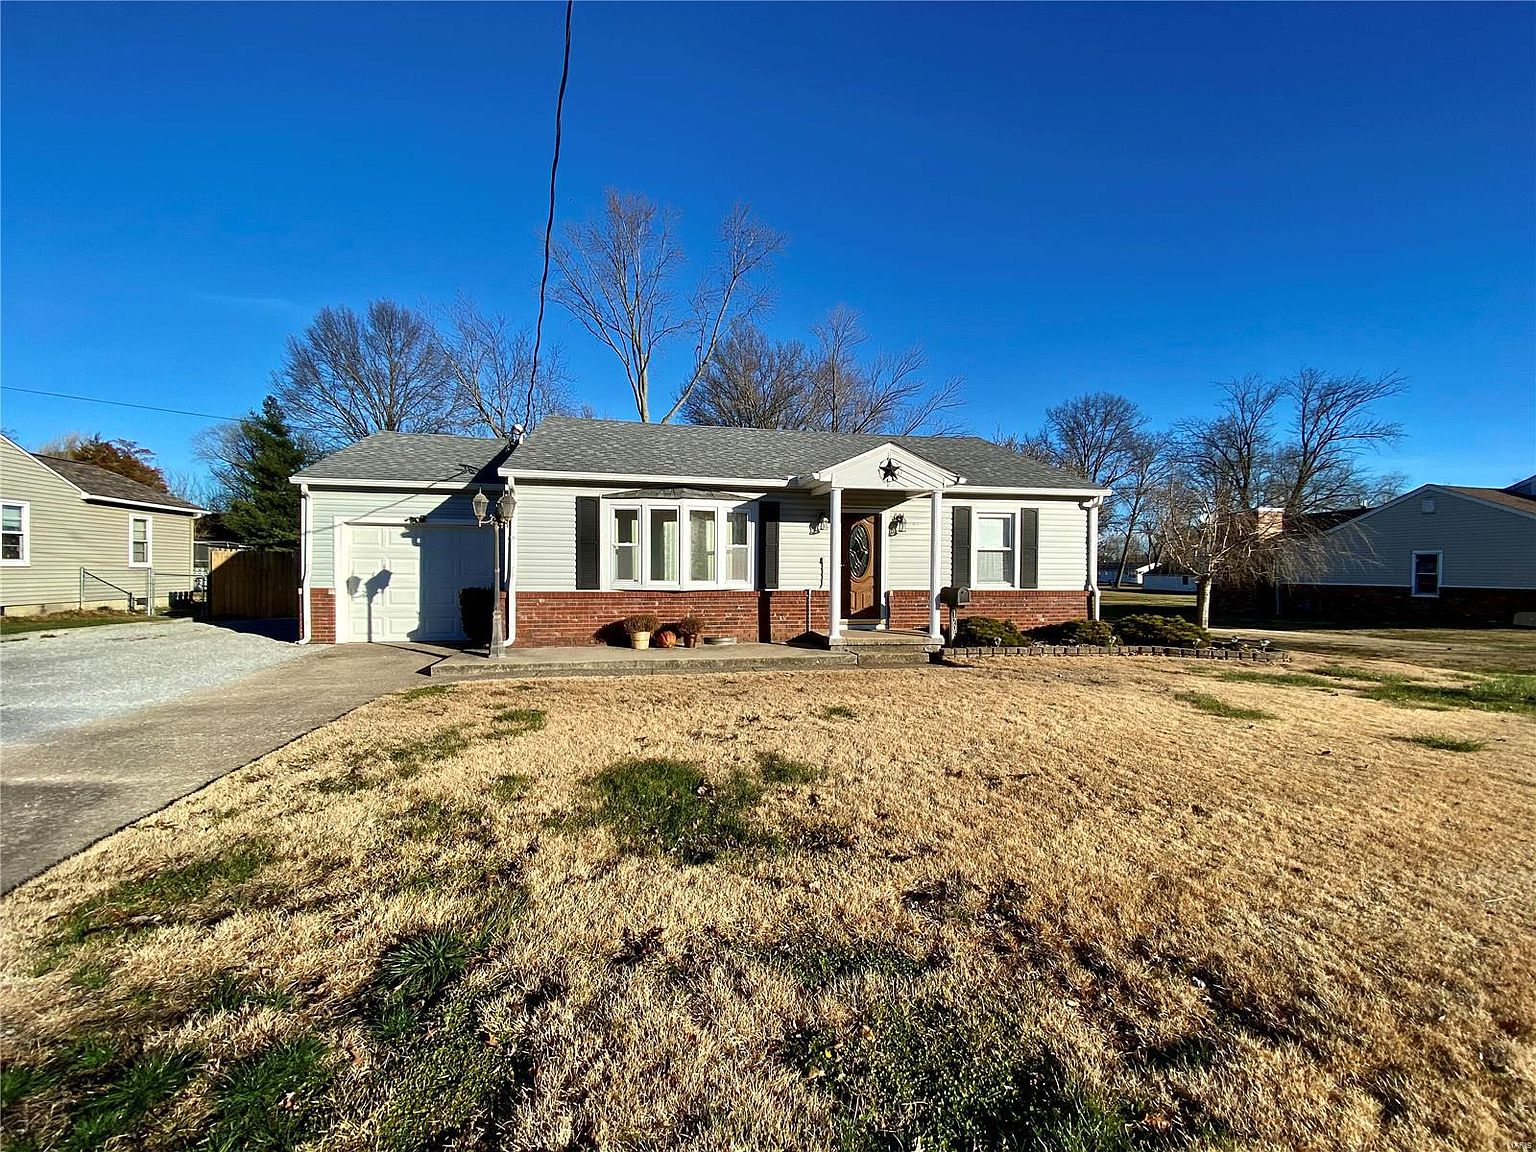 1706 W Copeland St Marion Il 62959 Zillow